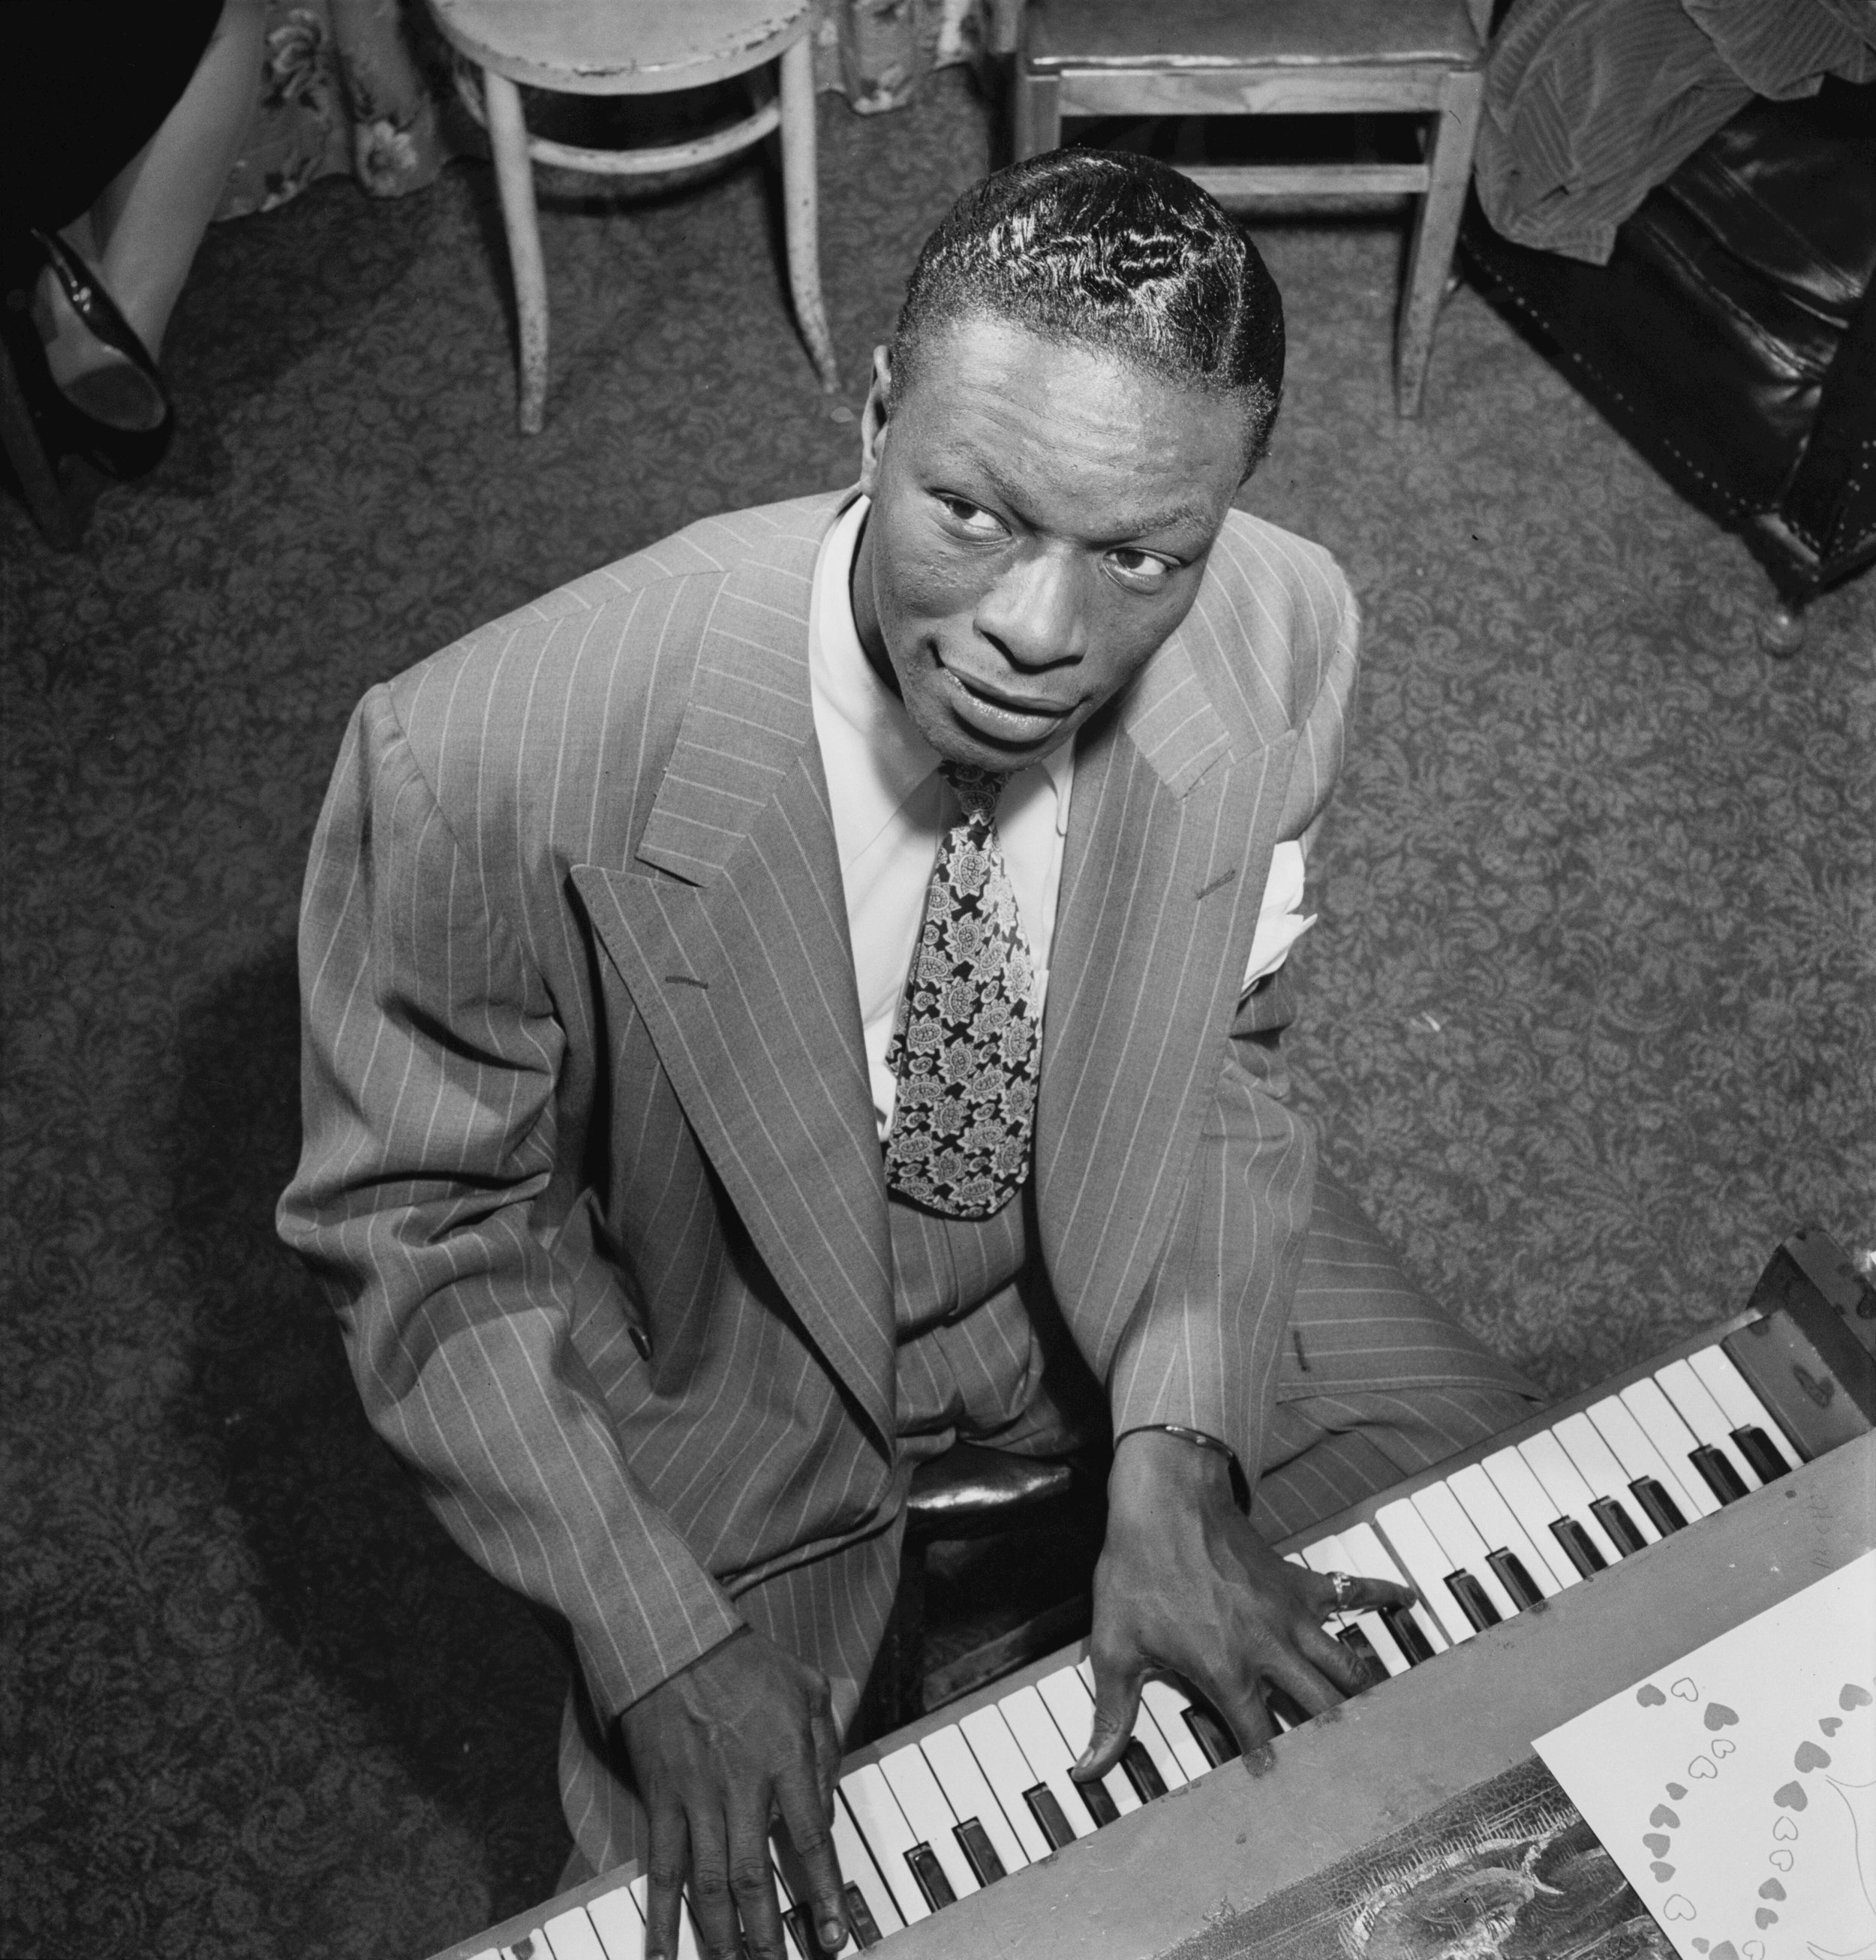 Nat King Cole (1940)